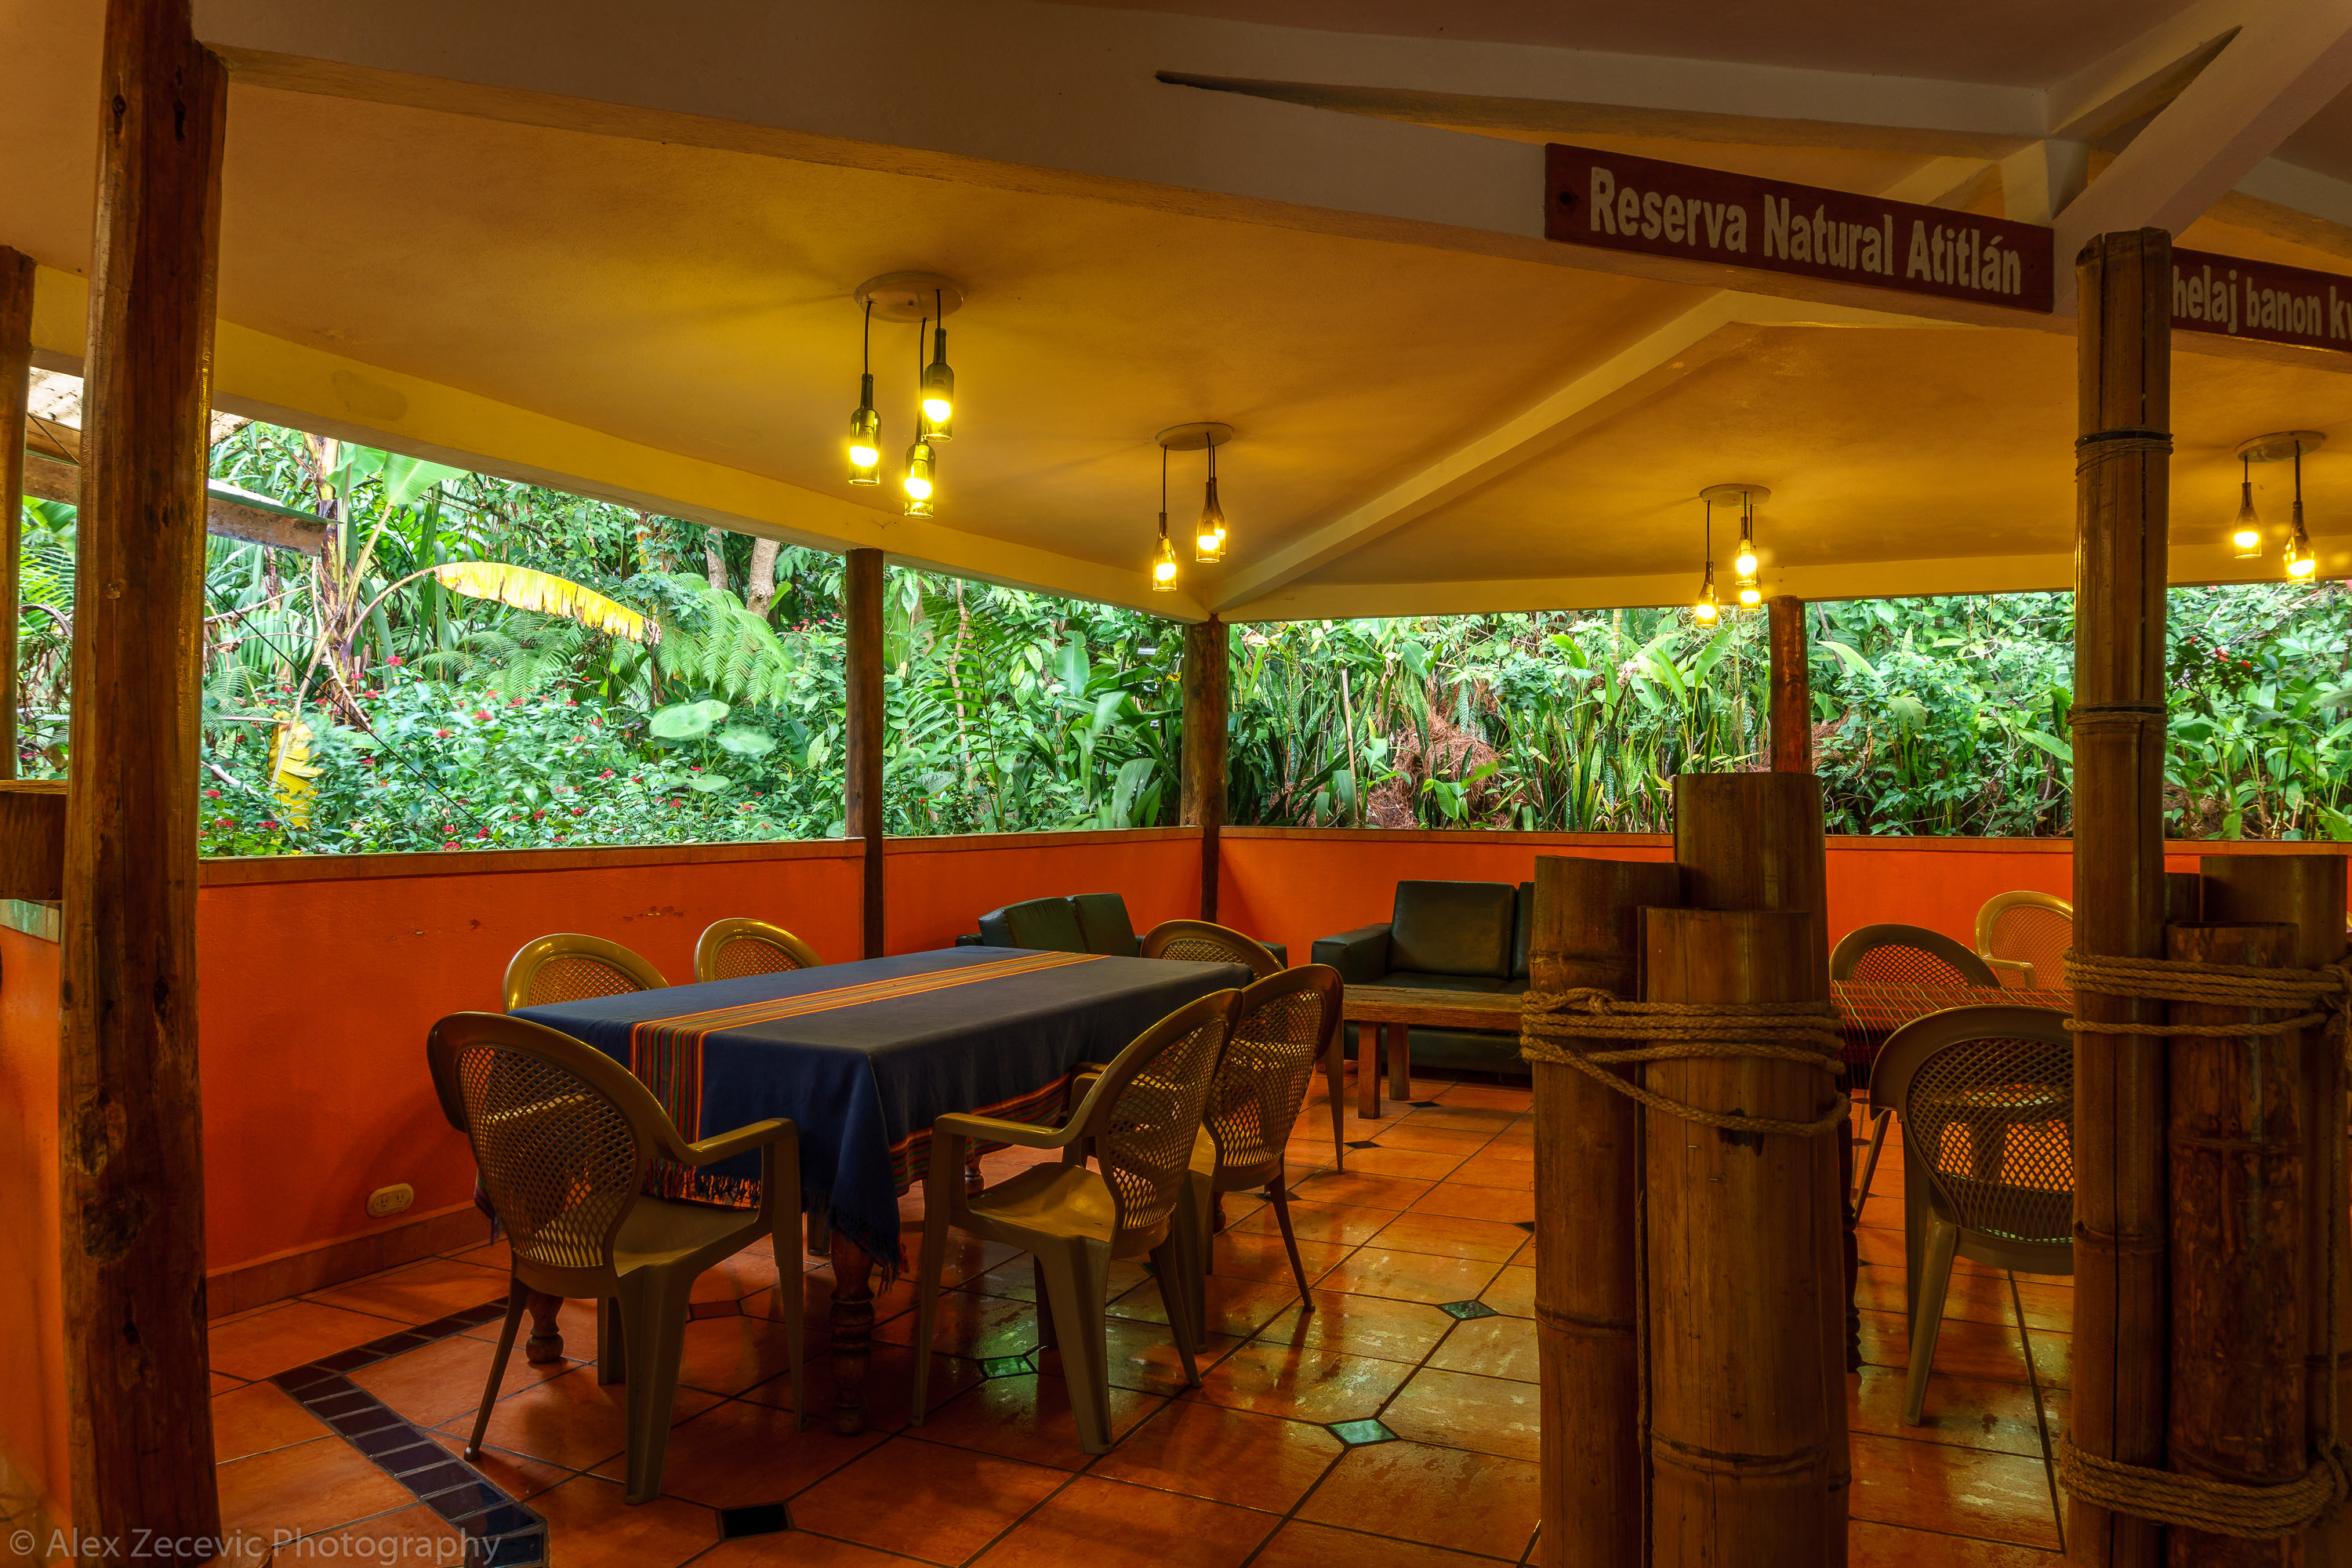 Restaurant at the Atitlan Reserve